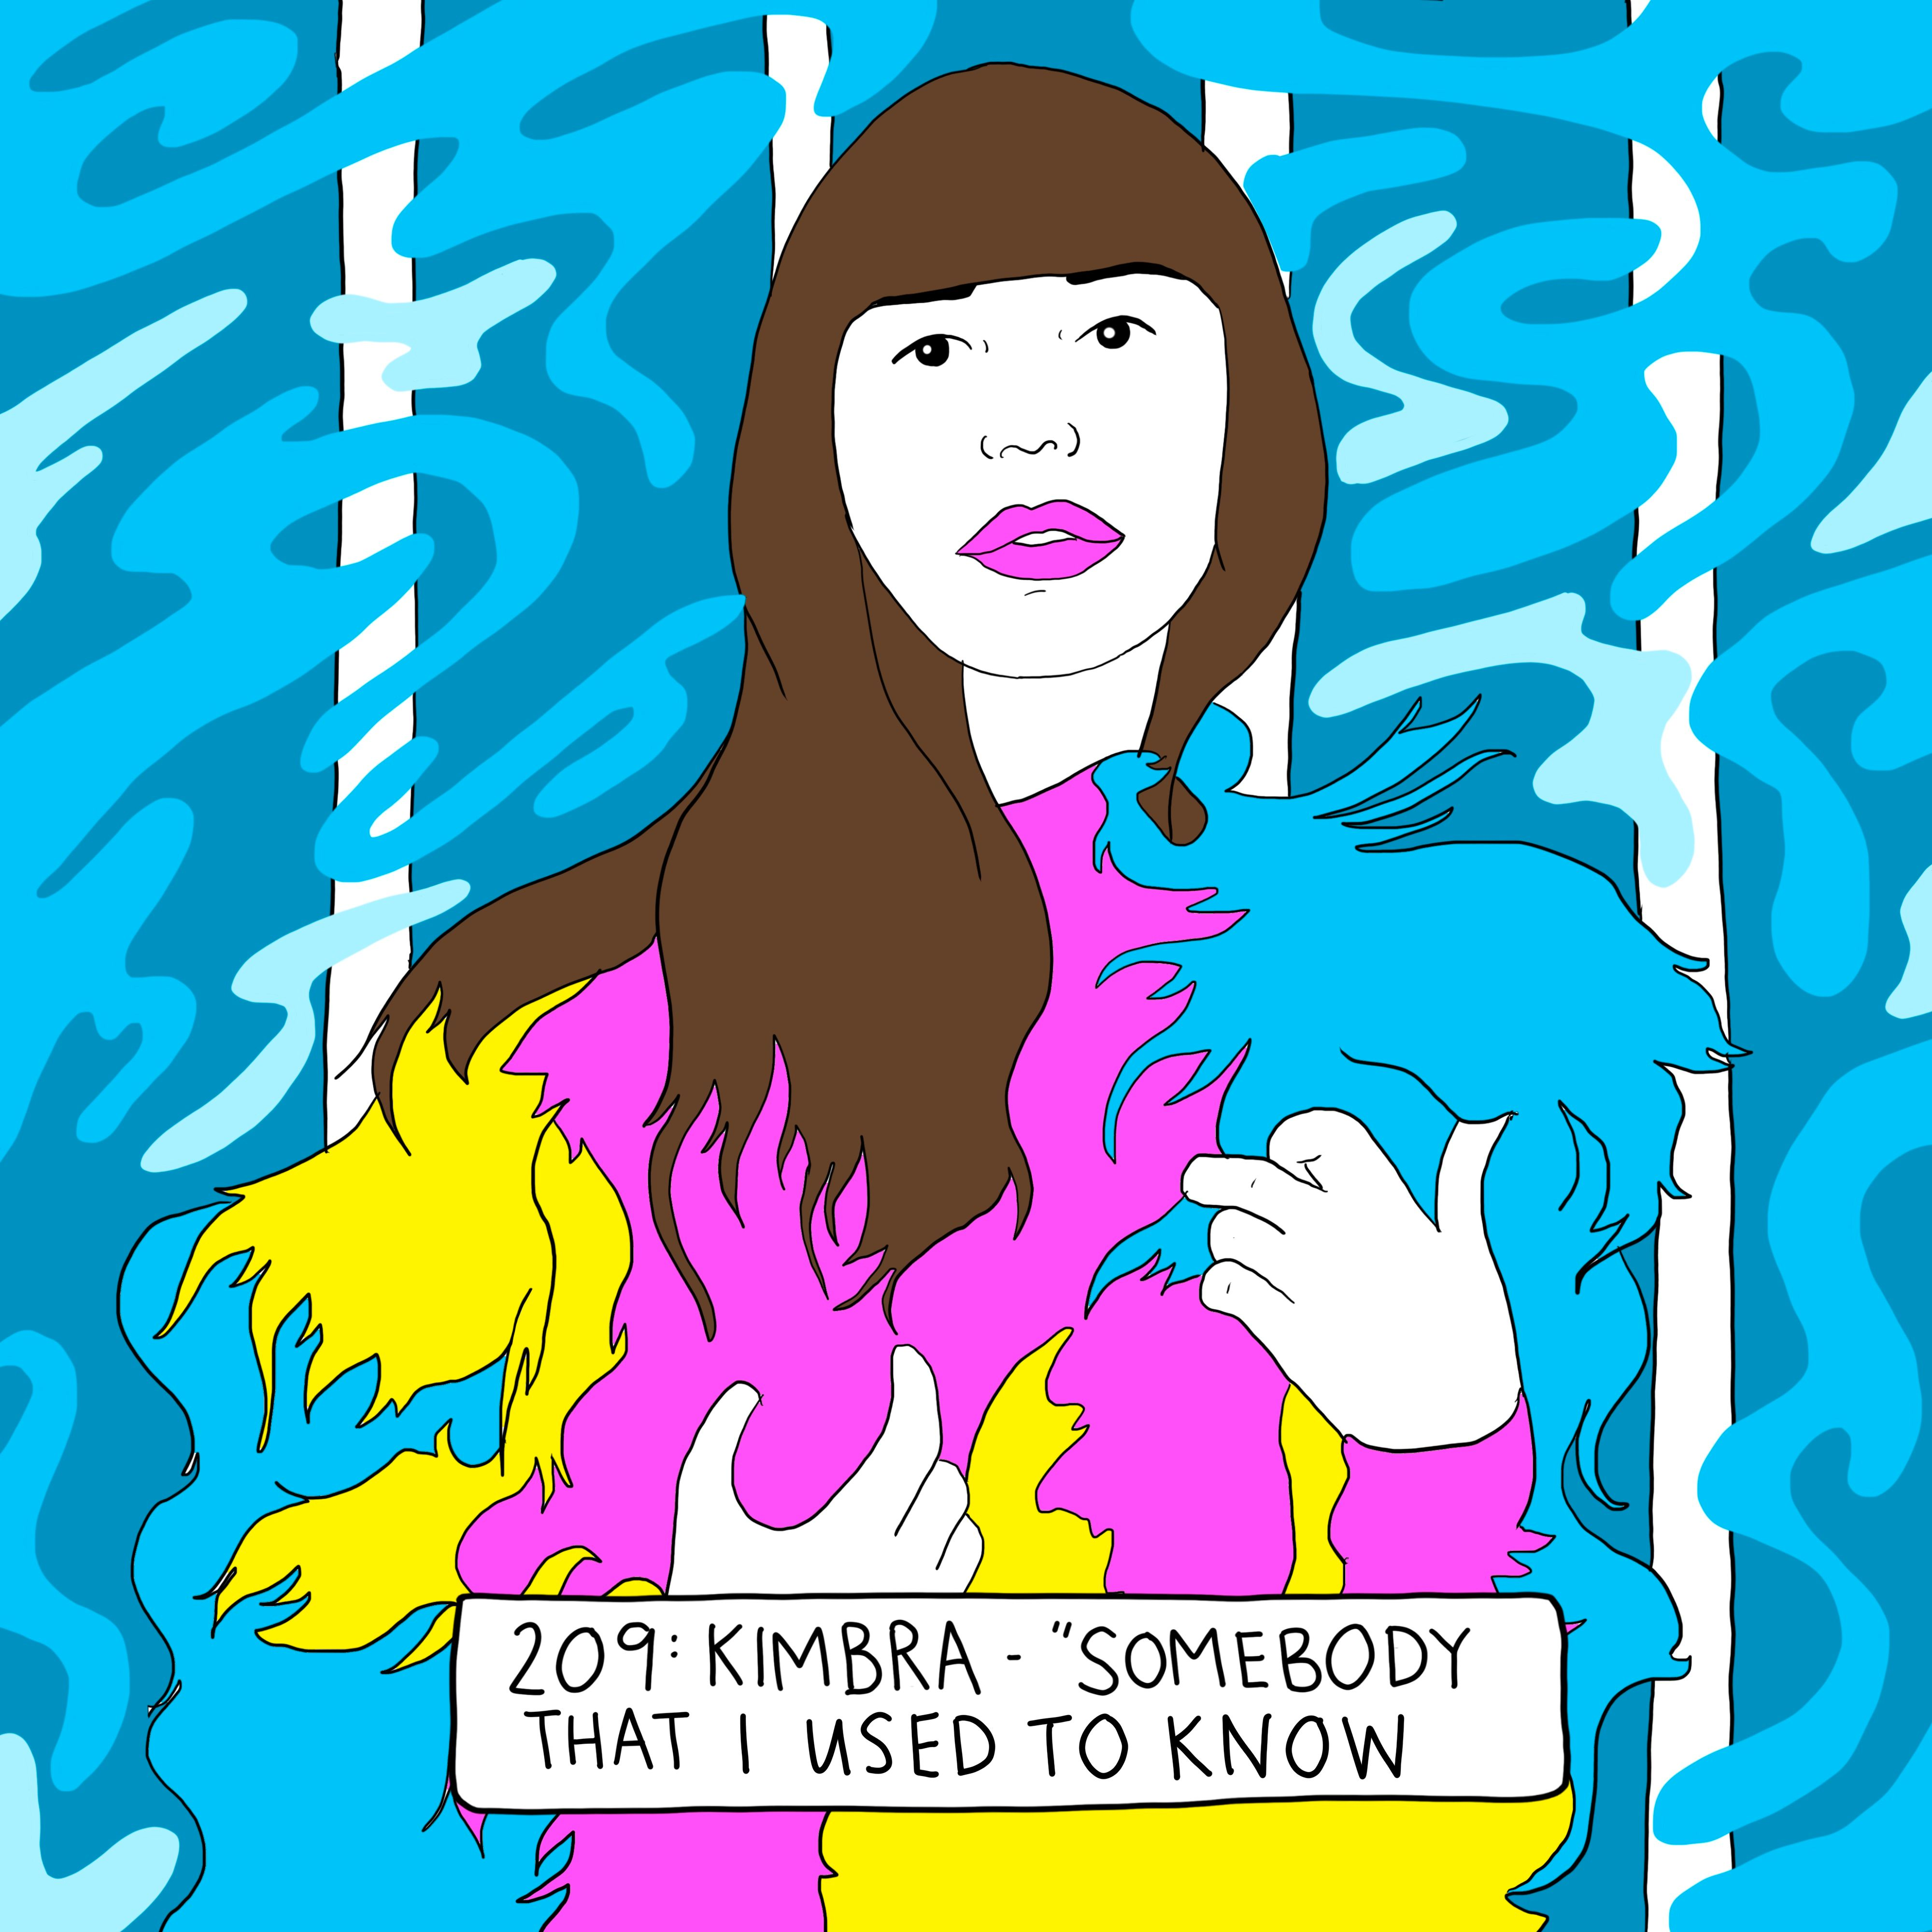 Kimbra reflects on a song that we used to know